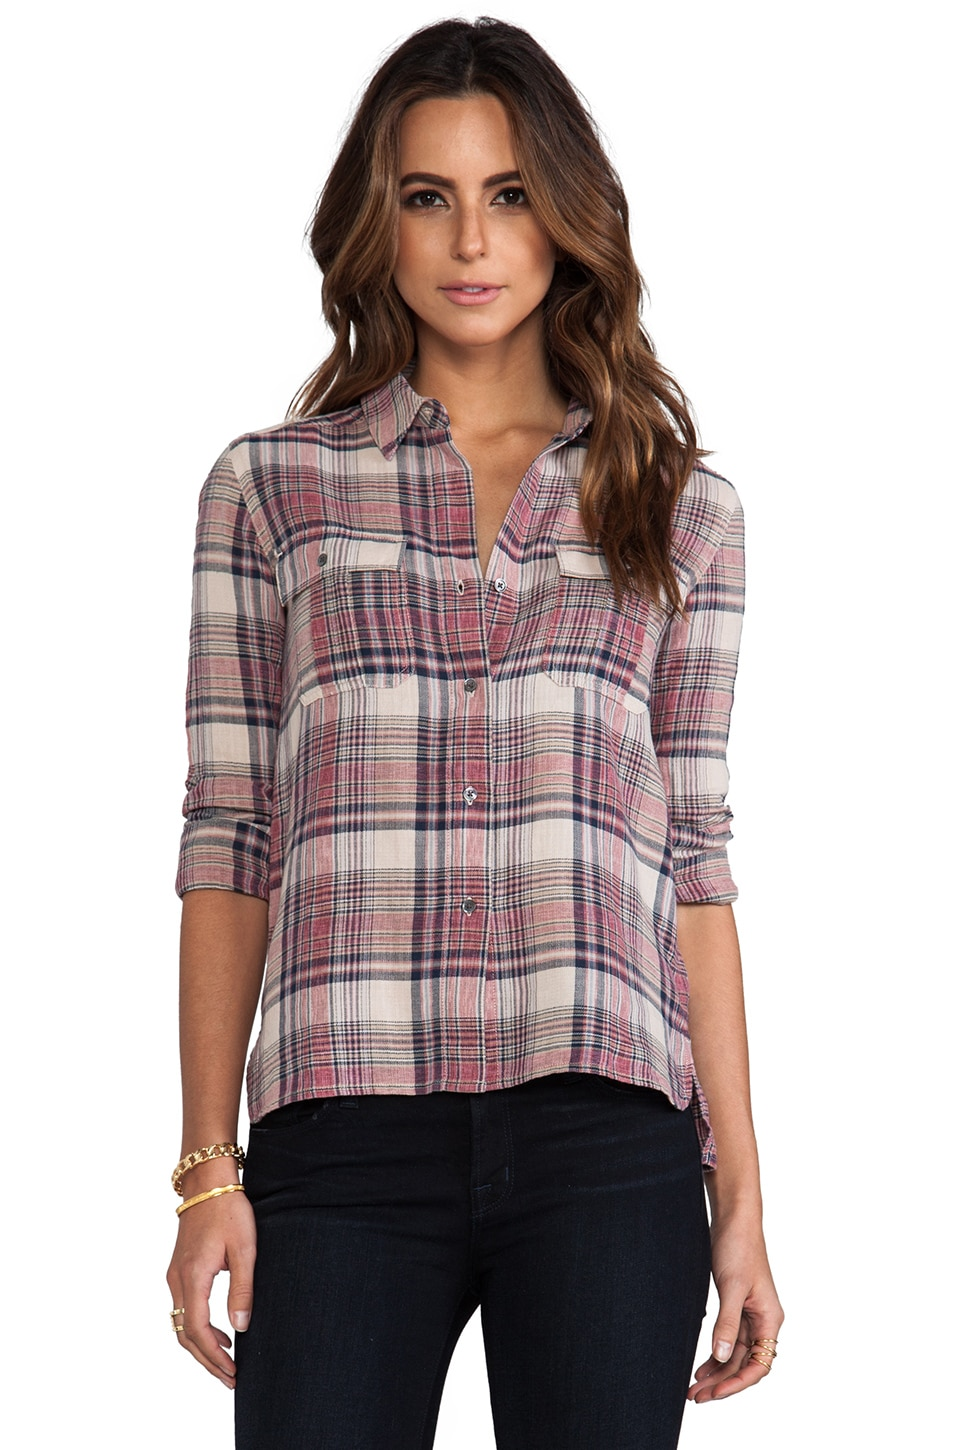 James Perse Shorteditch Plaid Pocket Shirt in Ember